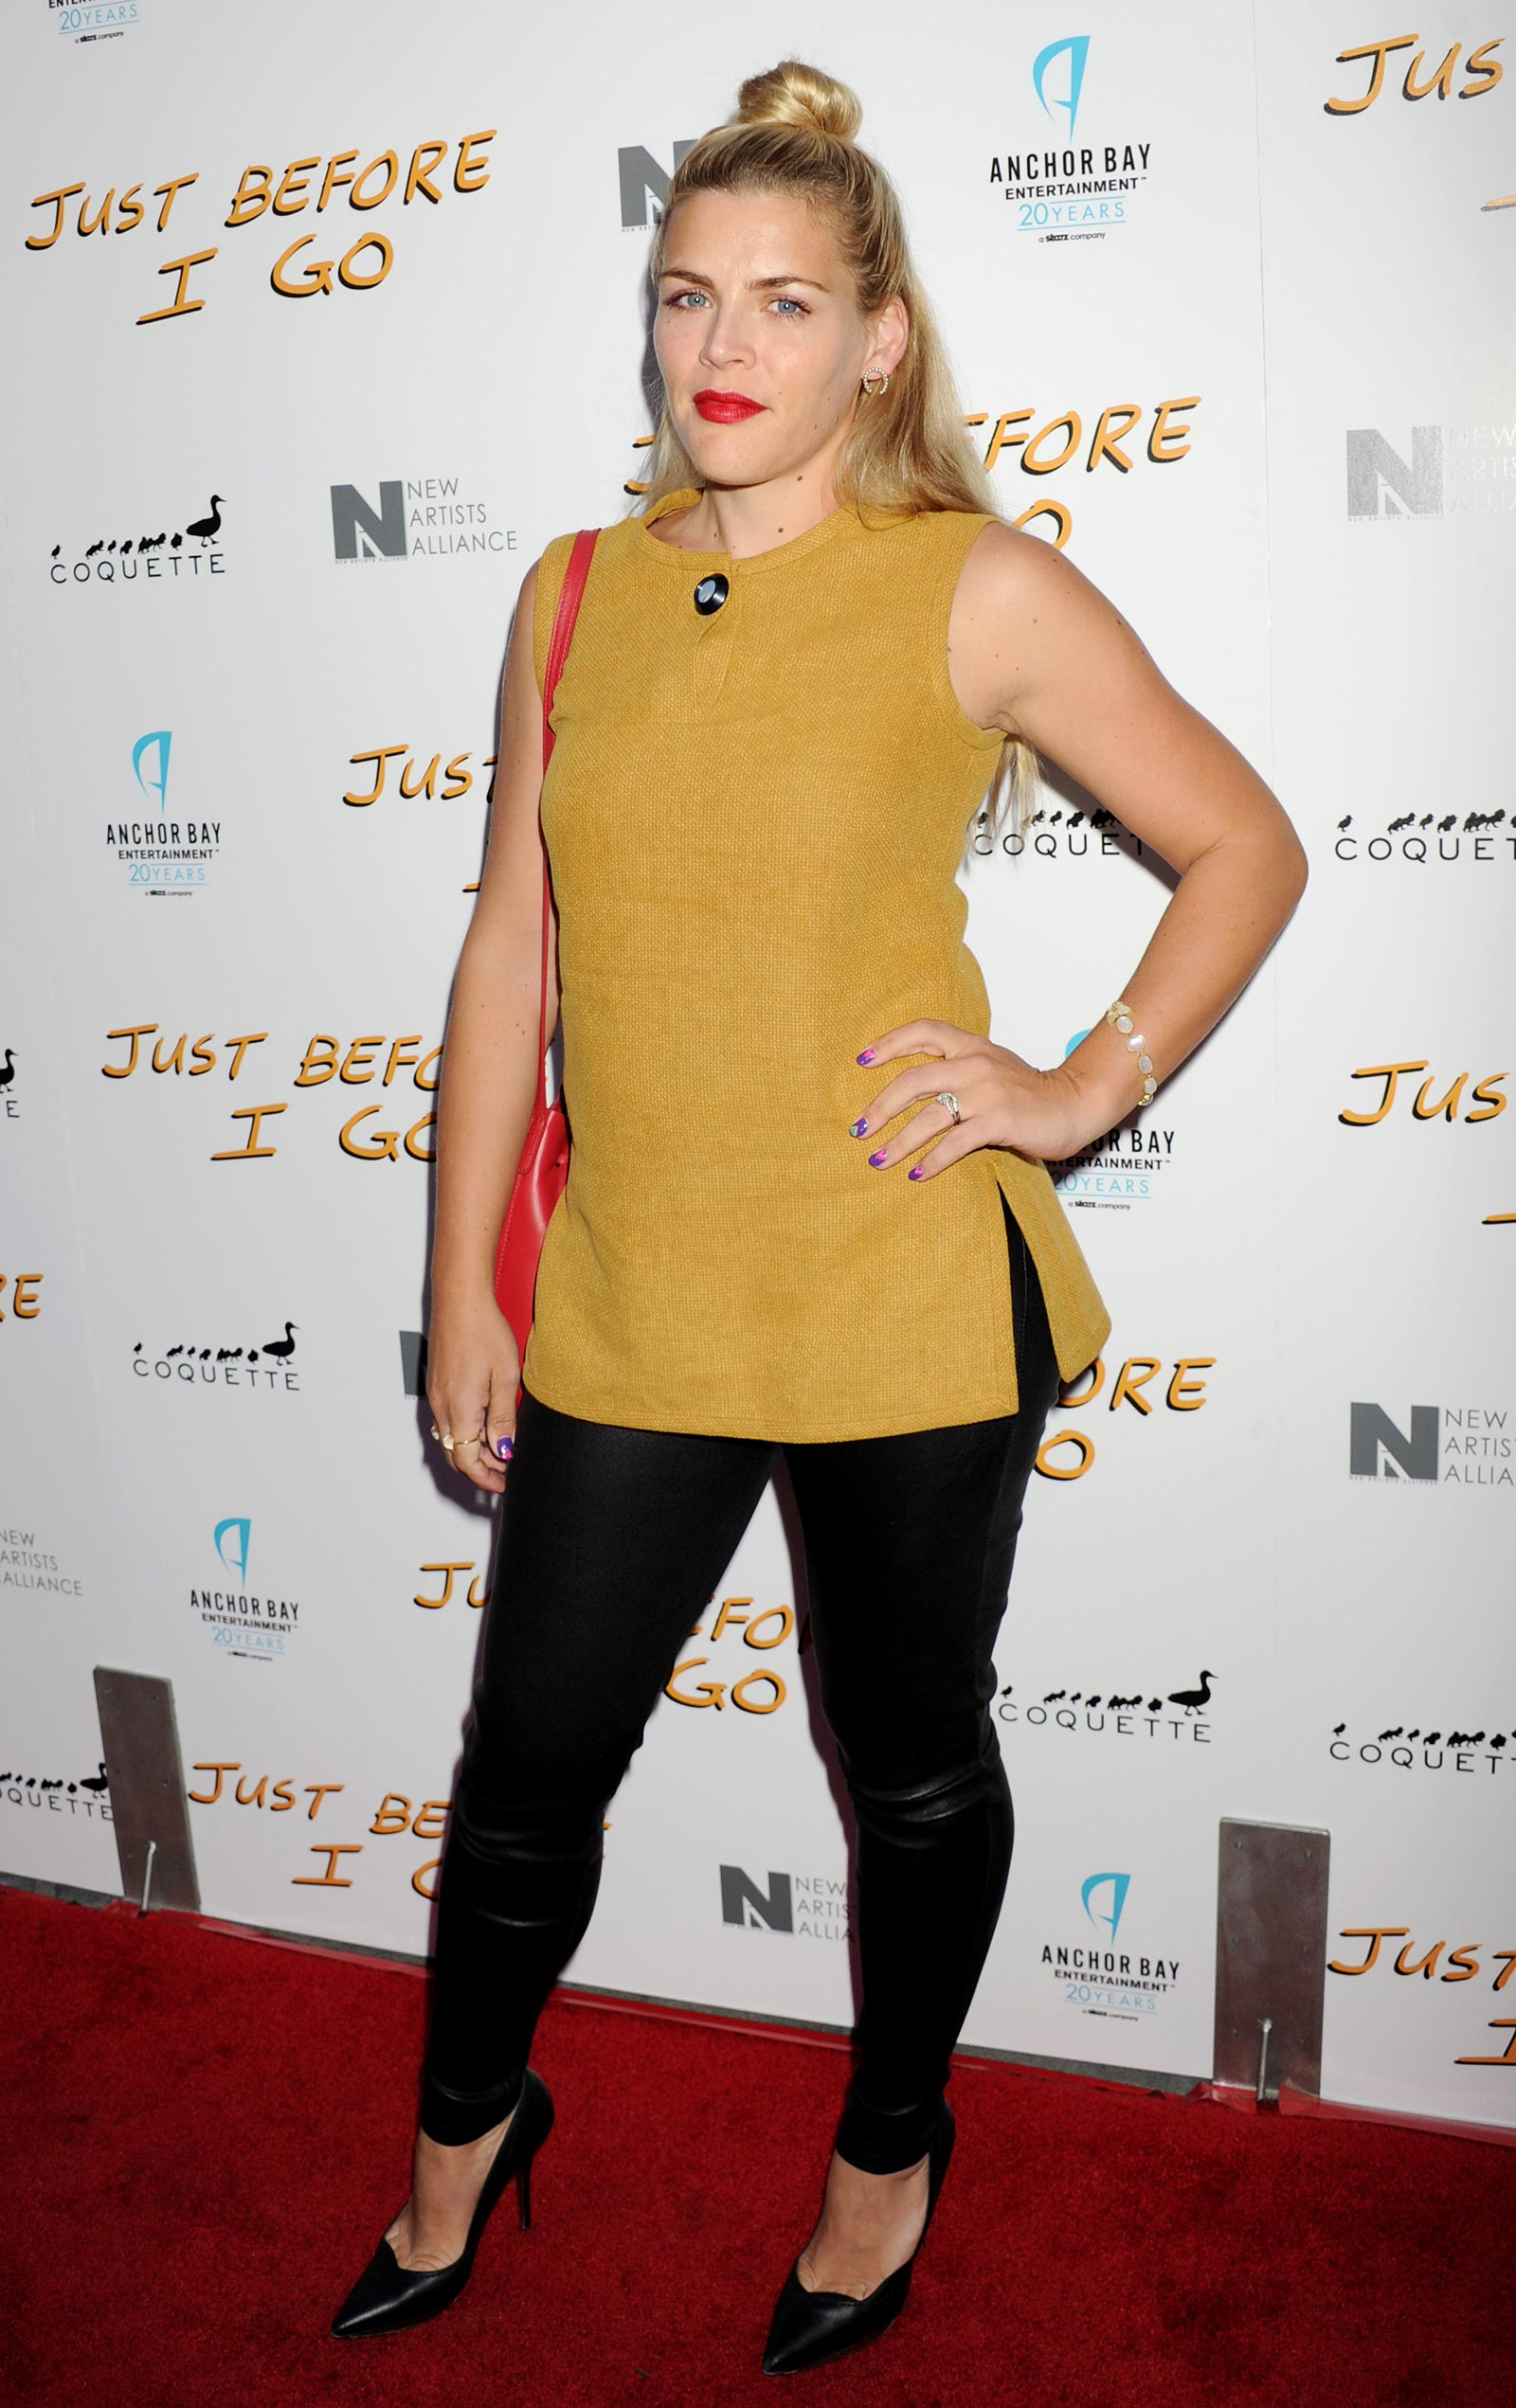 Busy Philipps attends Just Before I Go screening